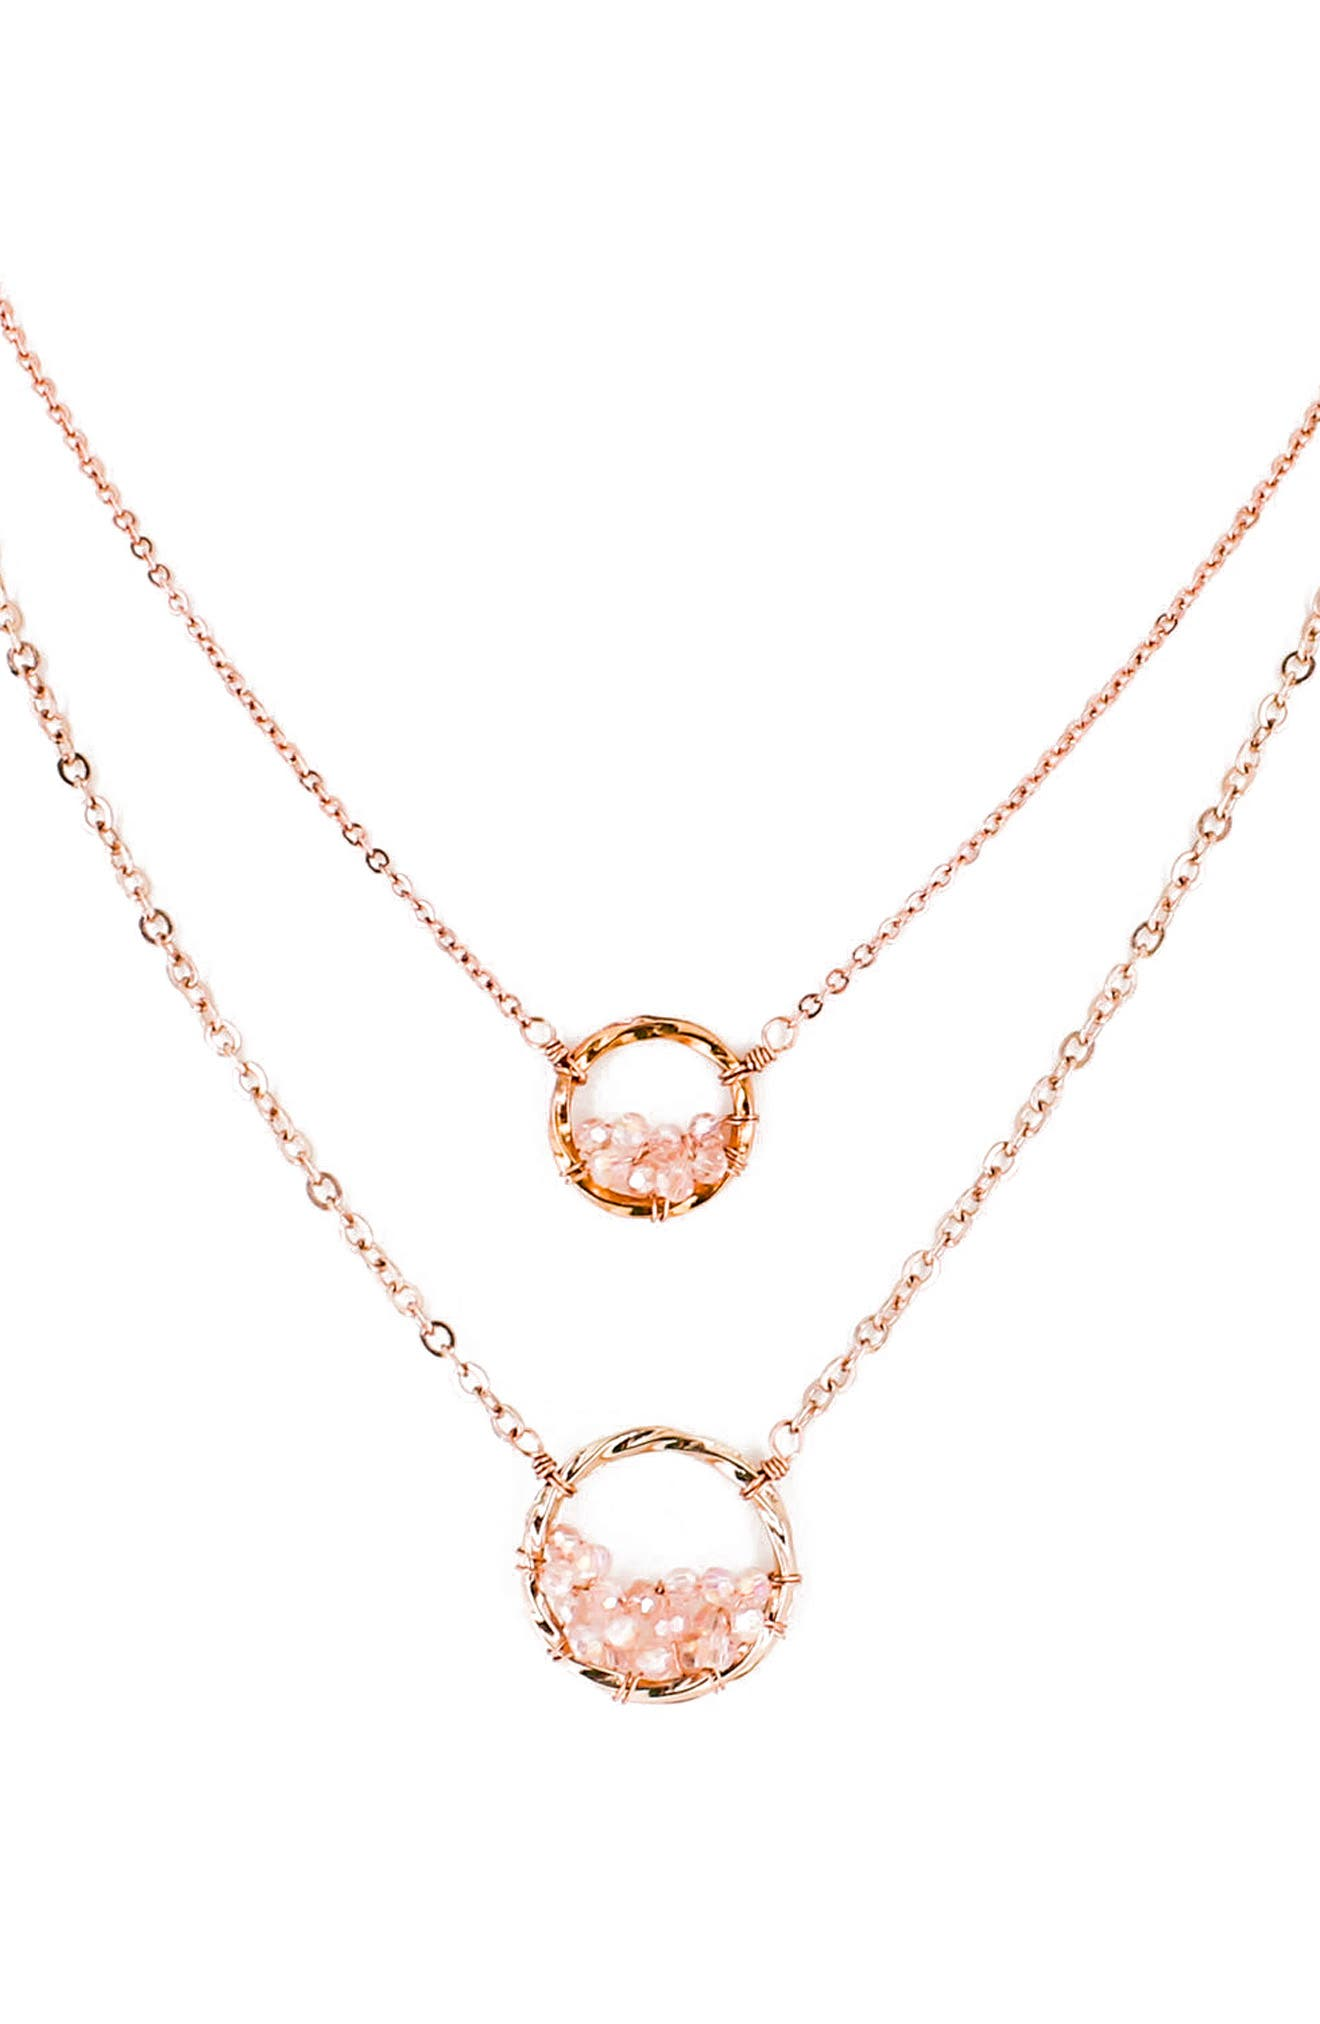 Main Image - Panacea Crystal Circle Double Chain Necklace